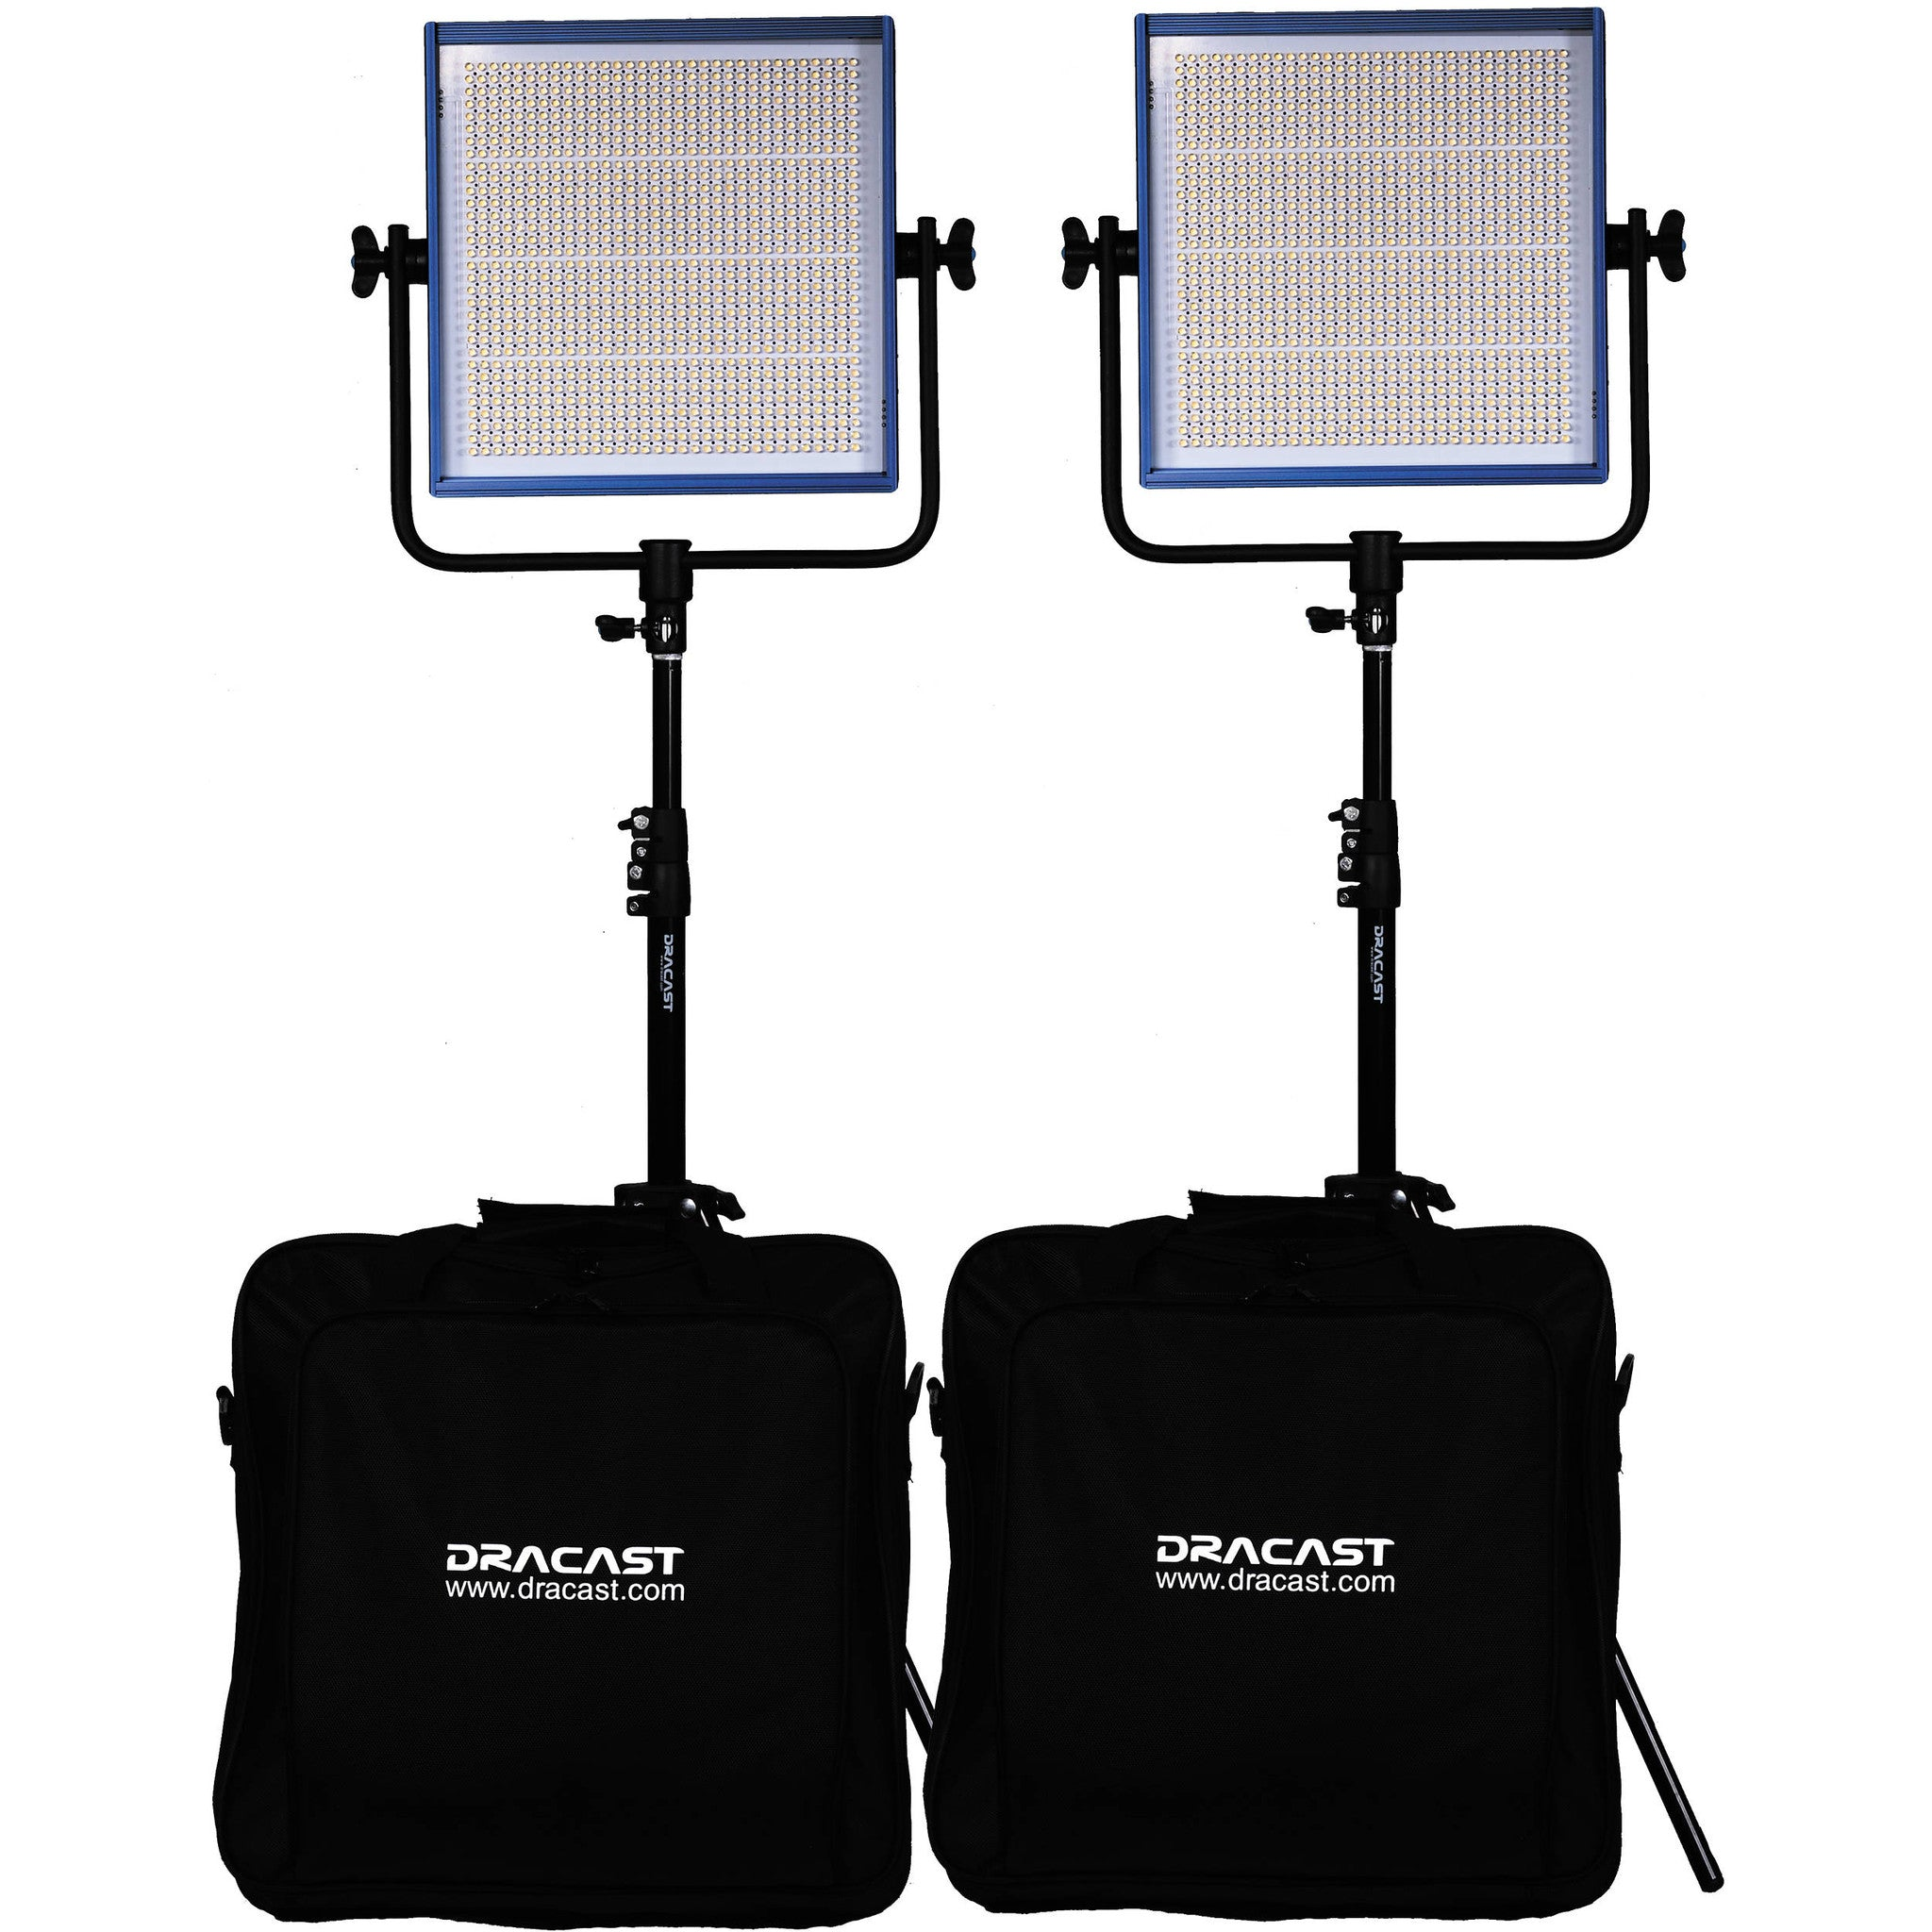 Dracast LED1000 Pro Daylight 2-Light Kit with V-Mount Battery Plates and Stands